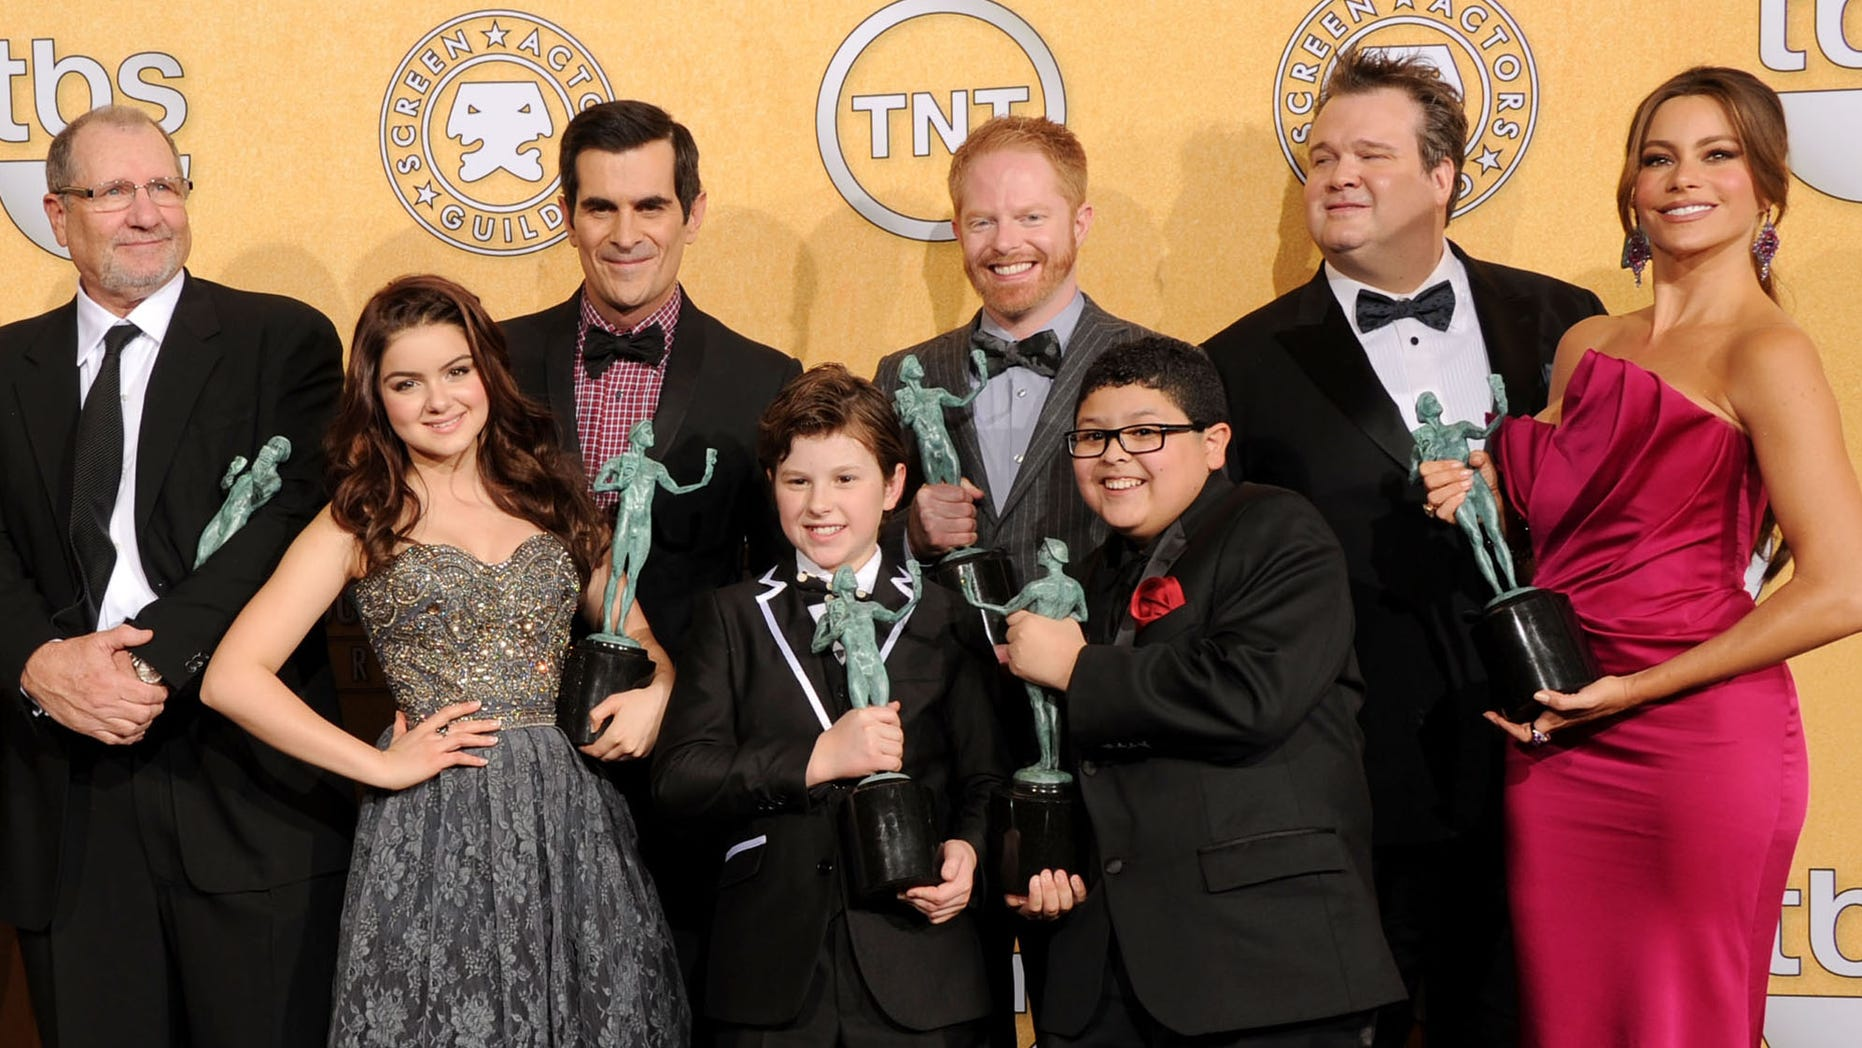 The cast of 'Modern Family' (Photo by Jason Merritt/Getty Images)